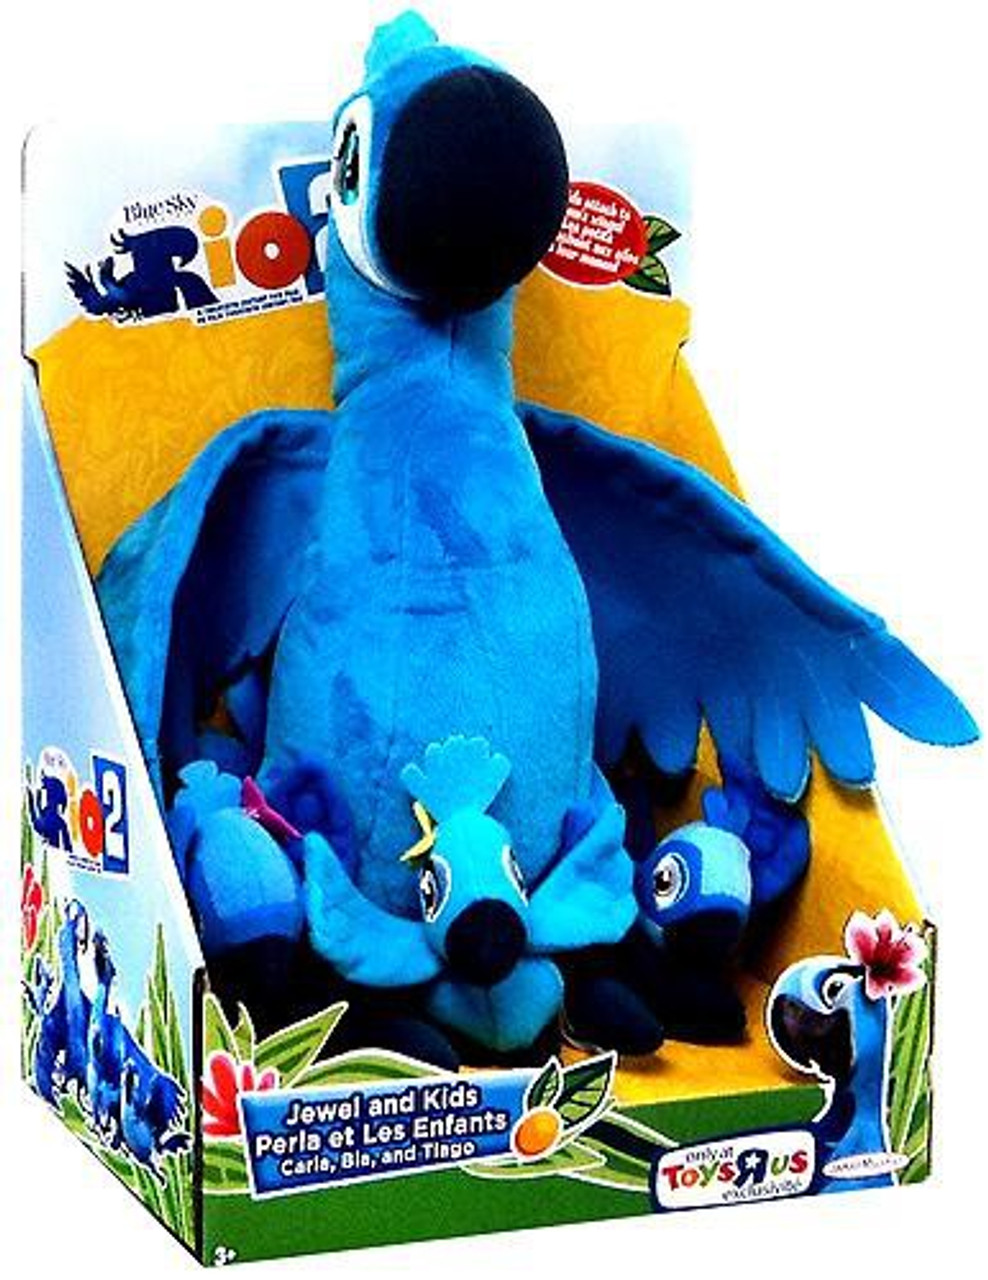 Rio 2 Jewel & Kids Exclusive 12-Inch Plush Set [Carla, Bia & Tiago]